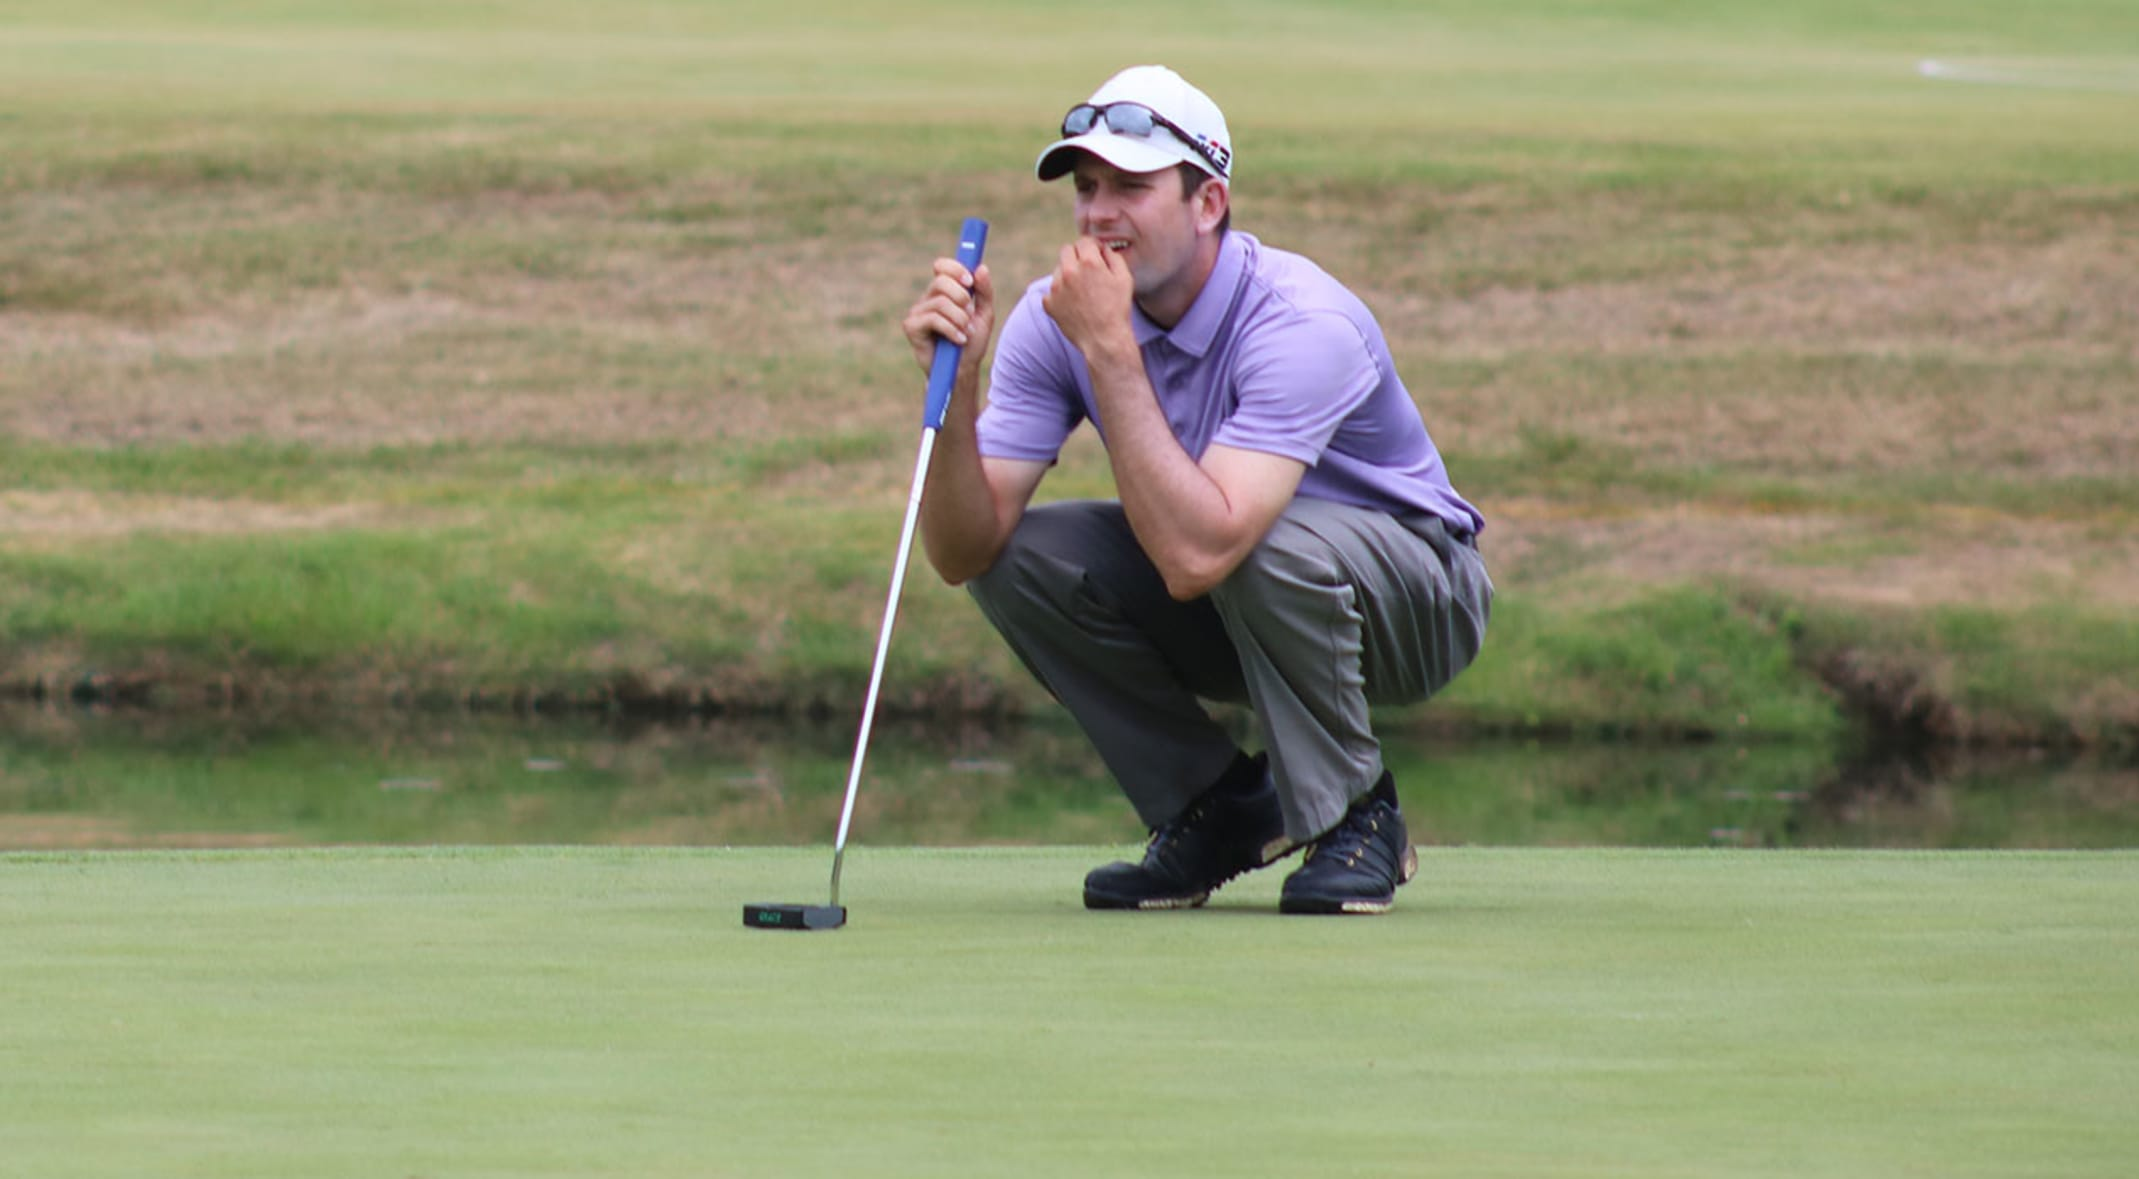 Martin Trainer Opens With 10 Under 62 At Price Cutter Charity